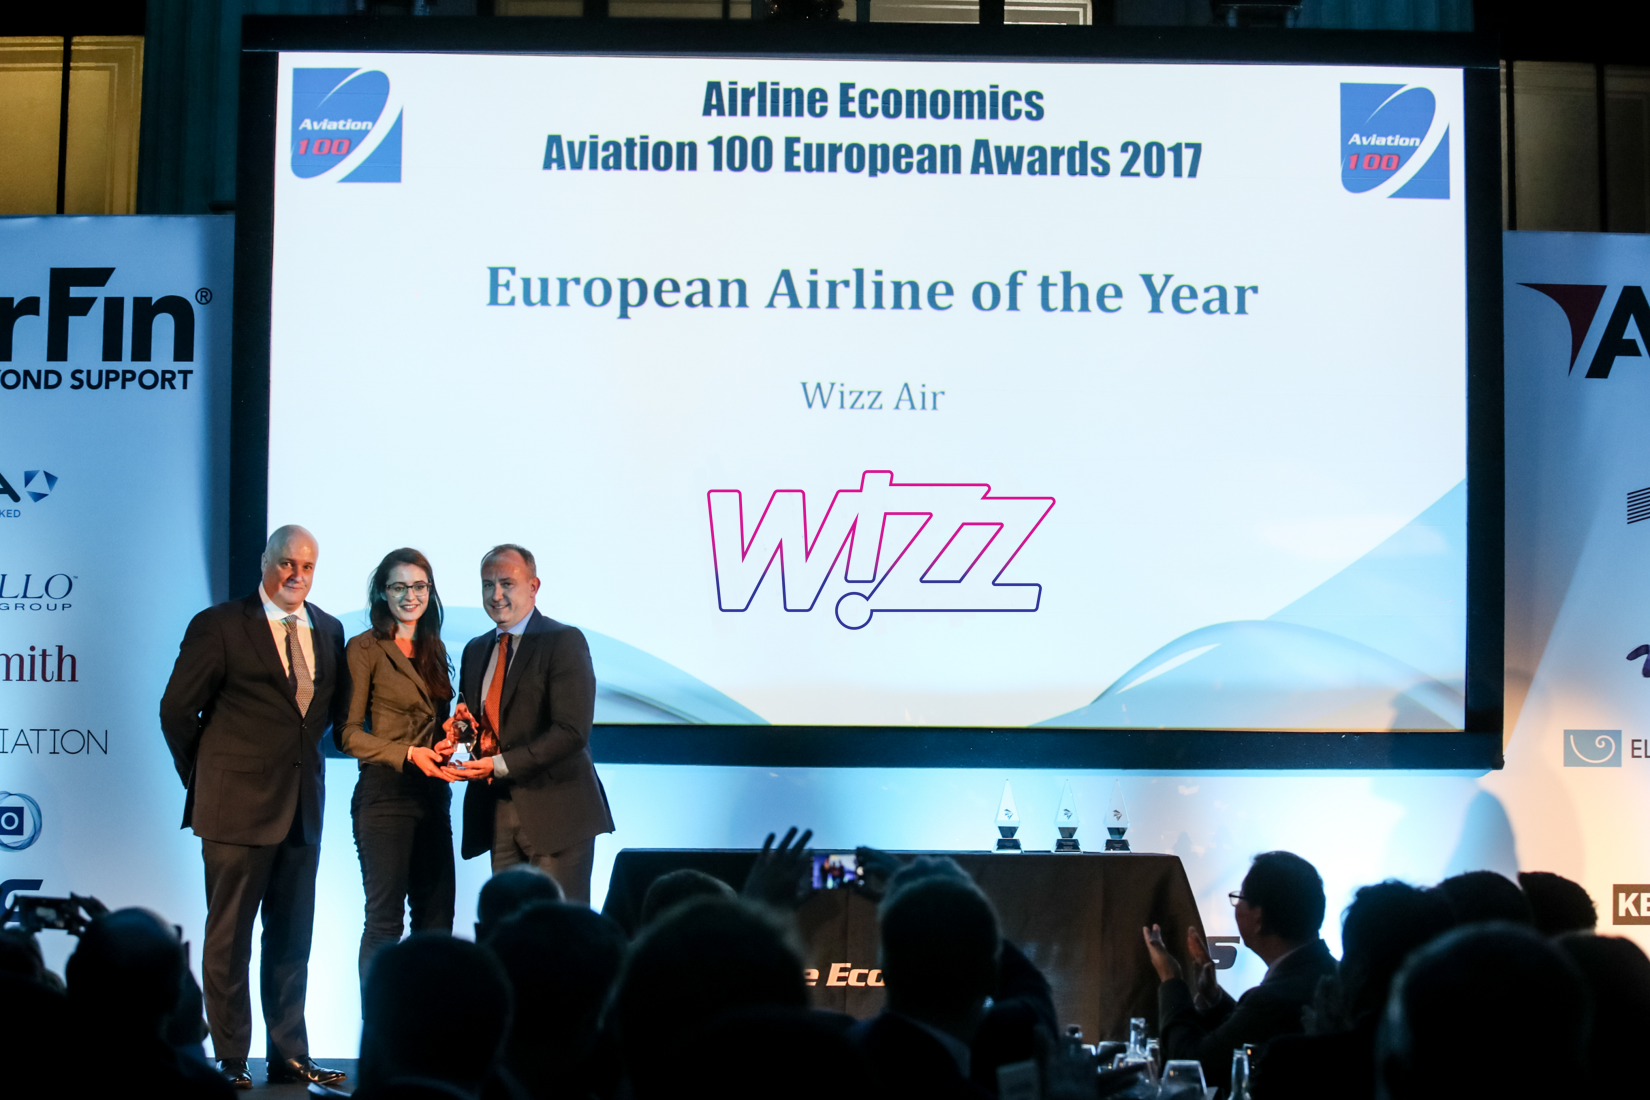 european_airline_of_the_year_award.png